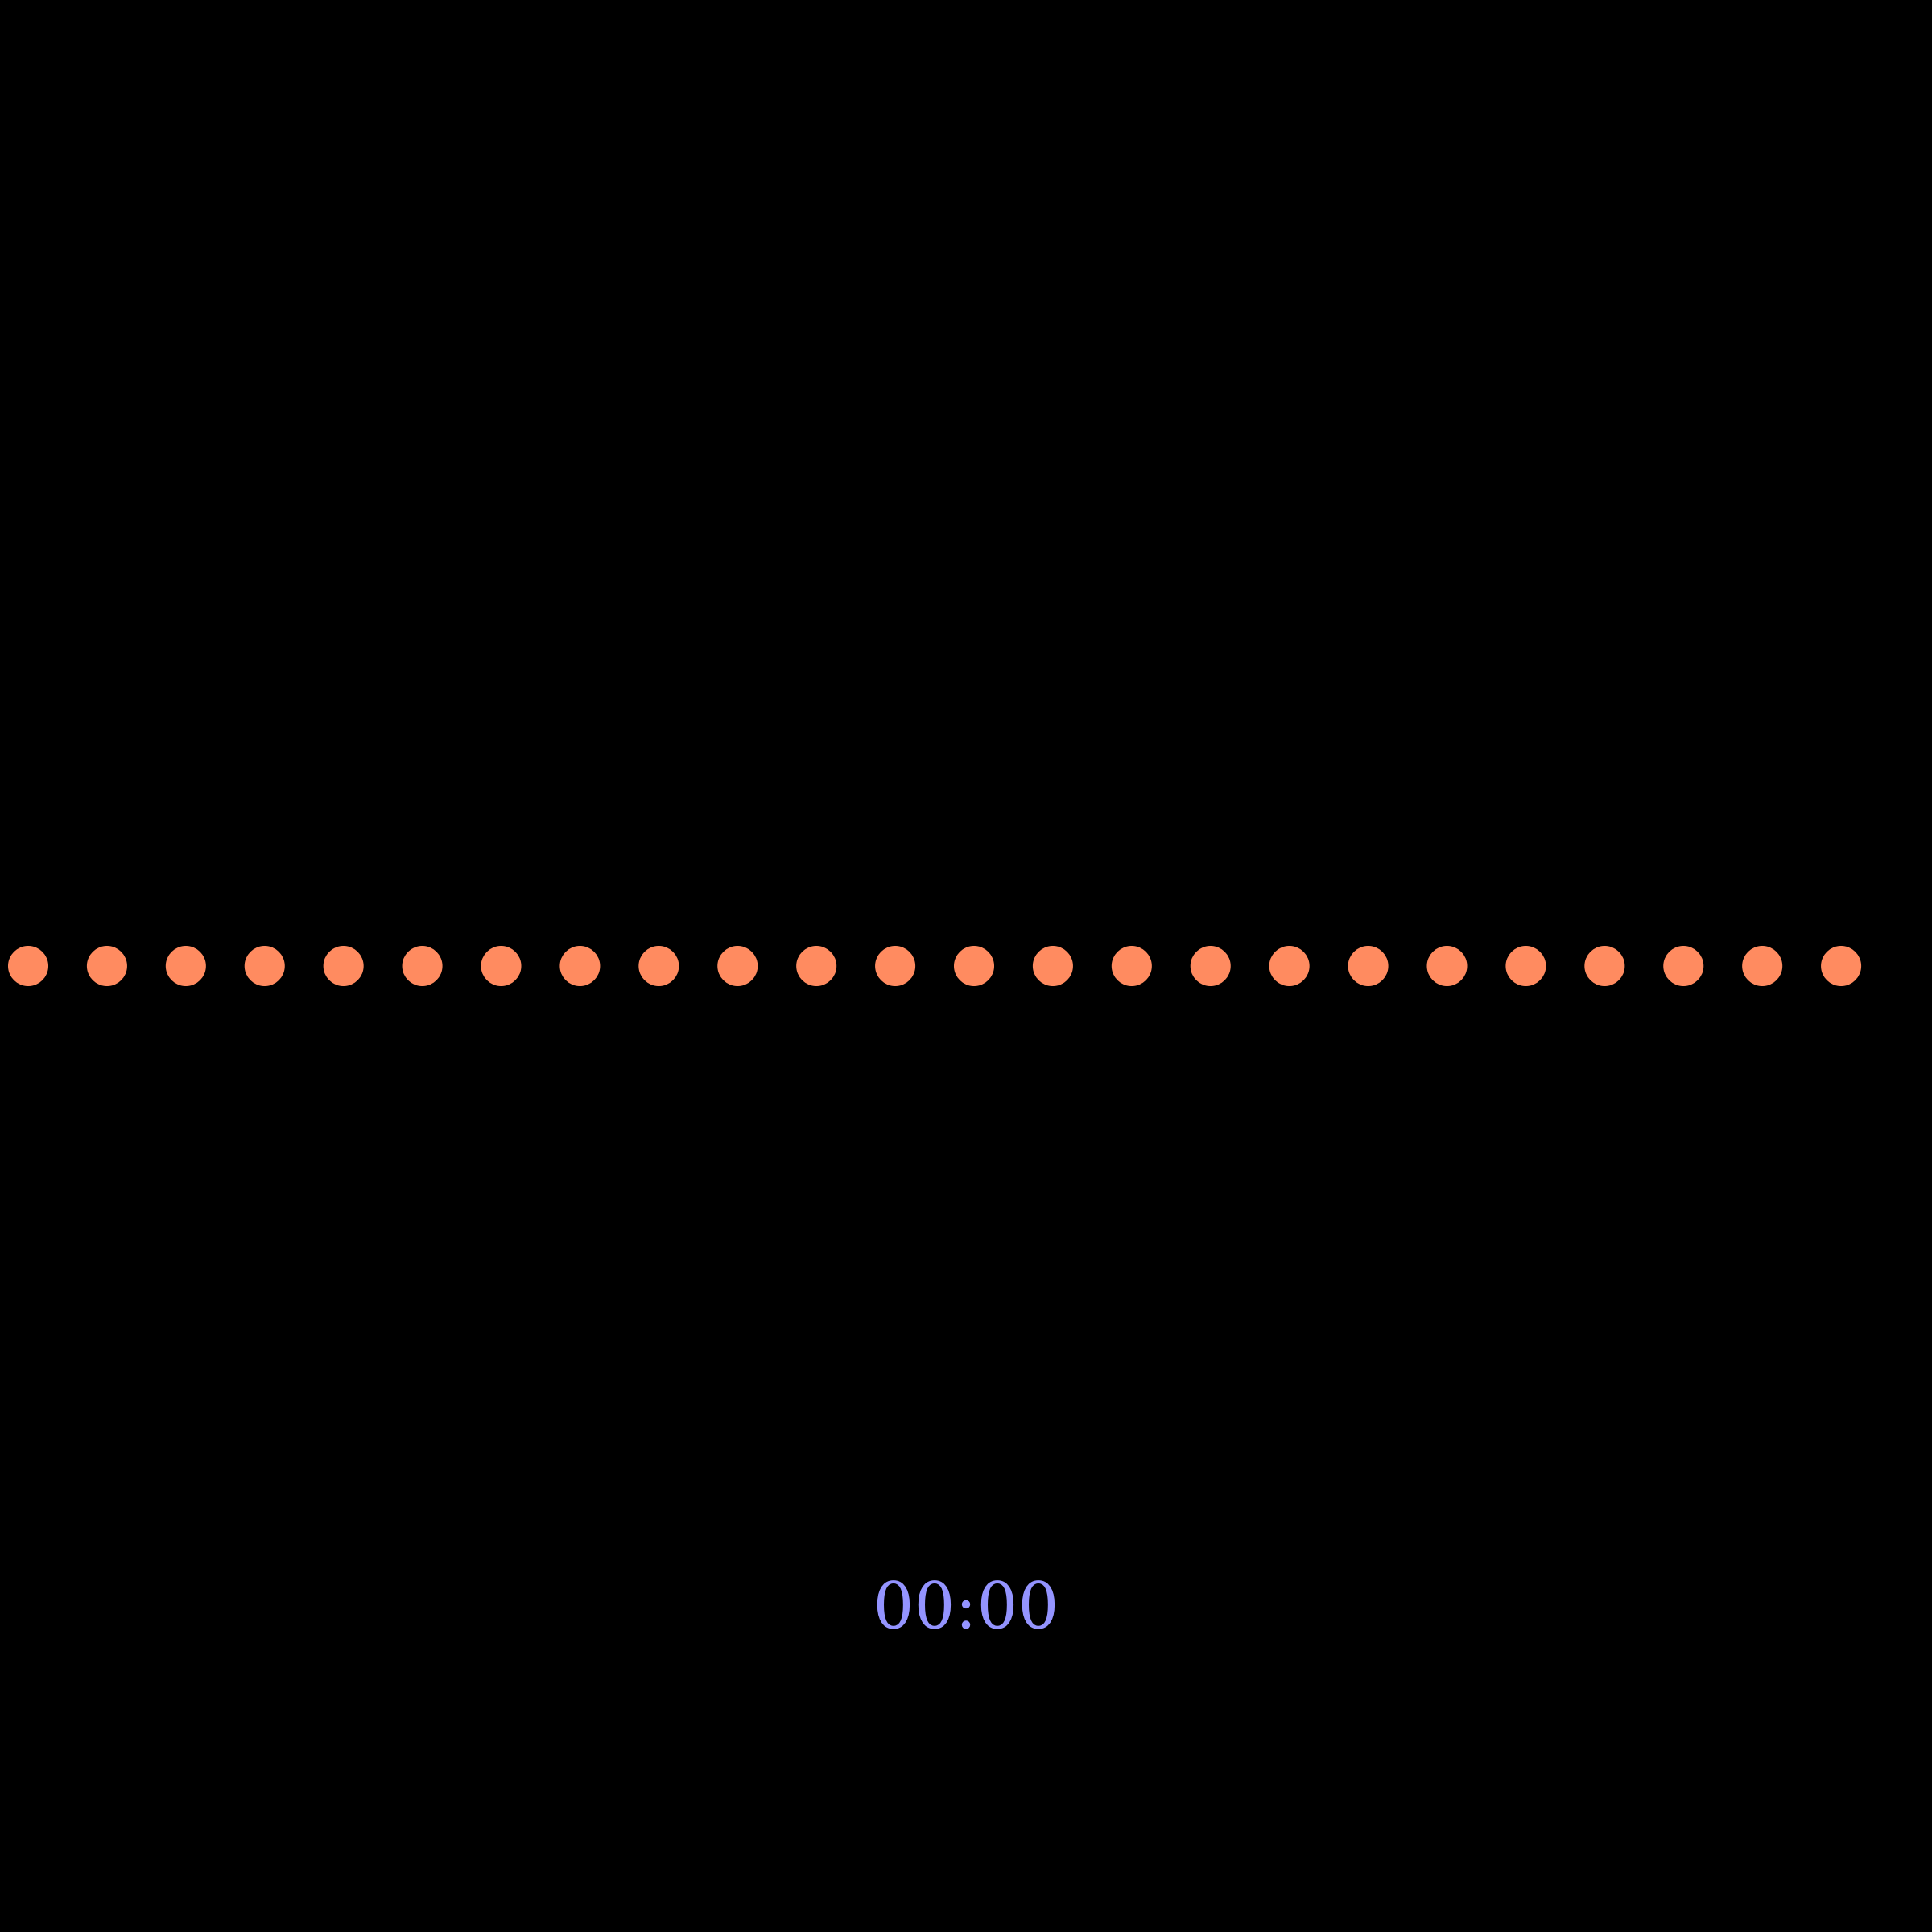 Beat Frequency Clock by gringer